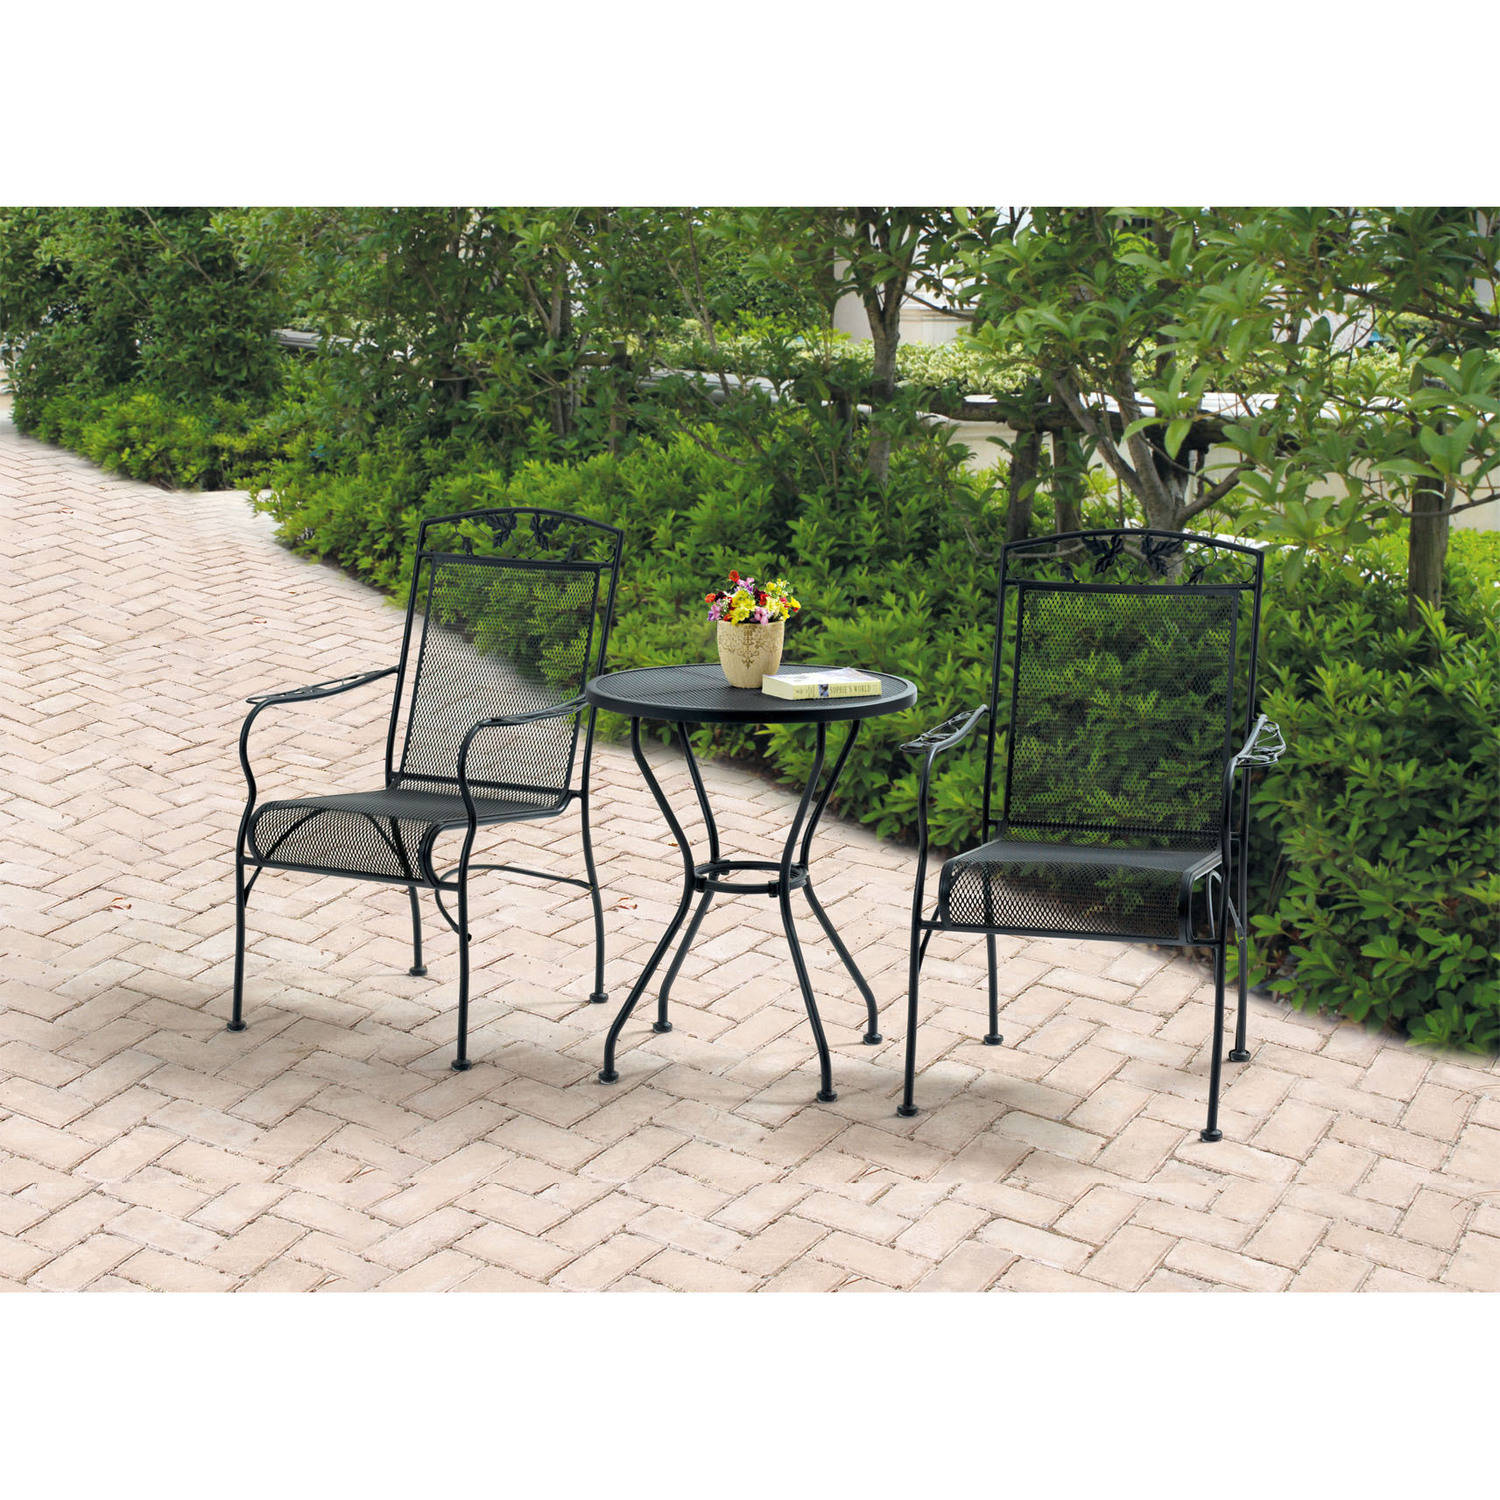 fire table great set sets outdoor dining pvxejym durable blogbeen living belham denton patio hayneedle piece